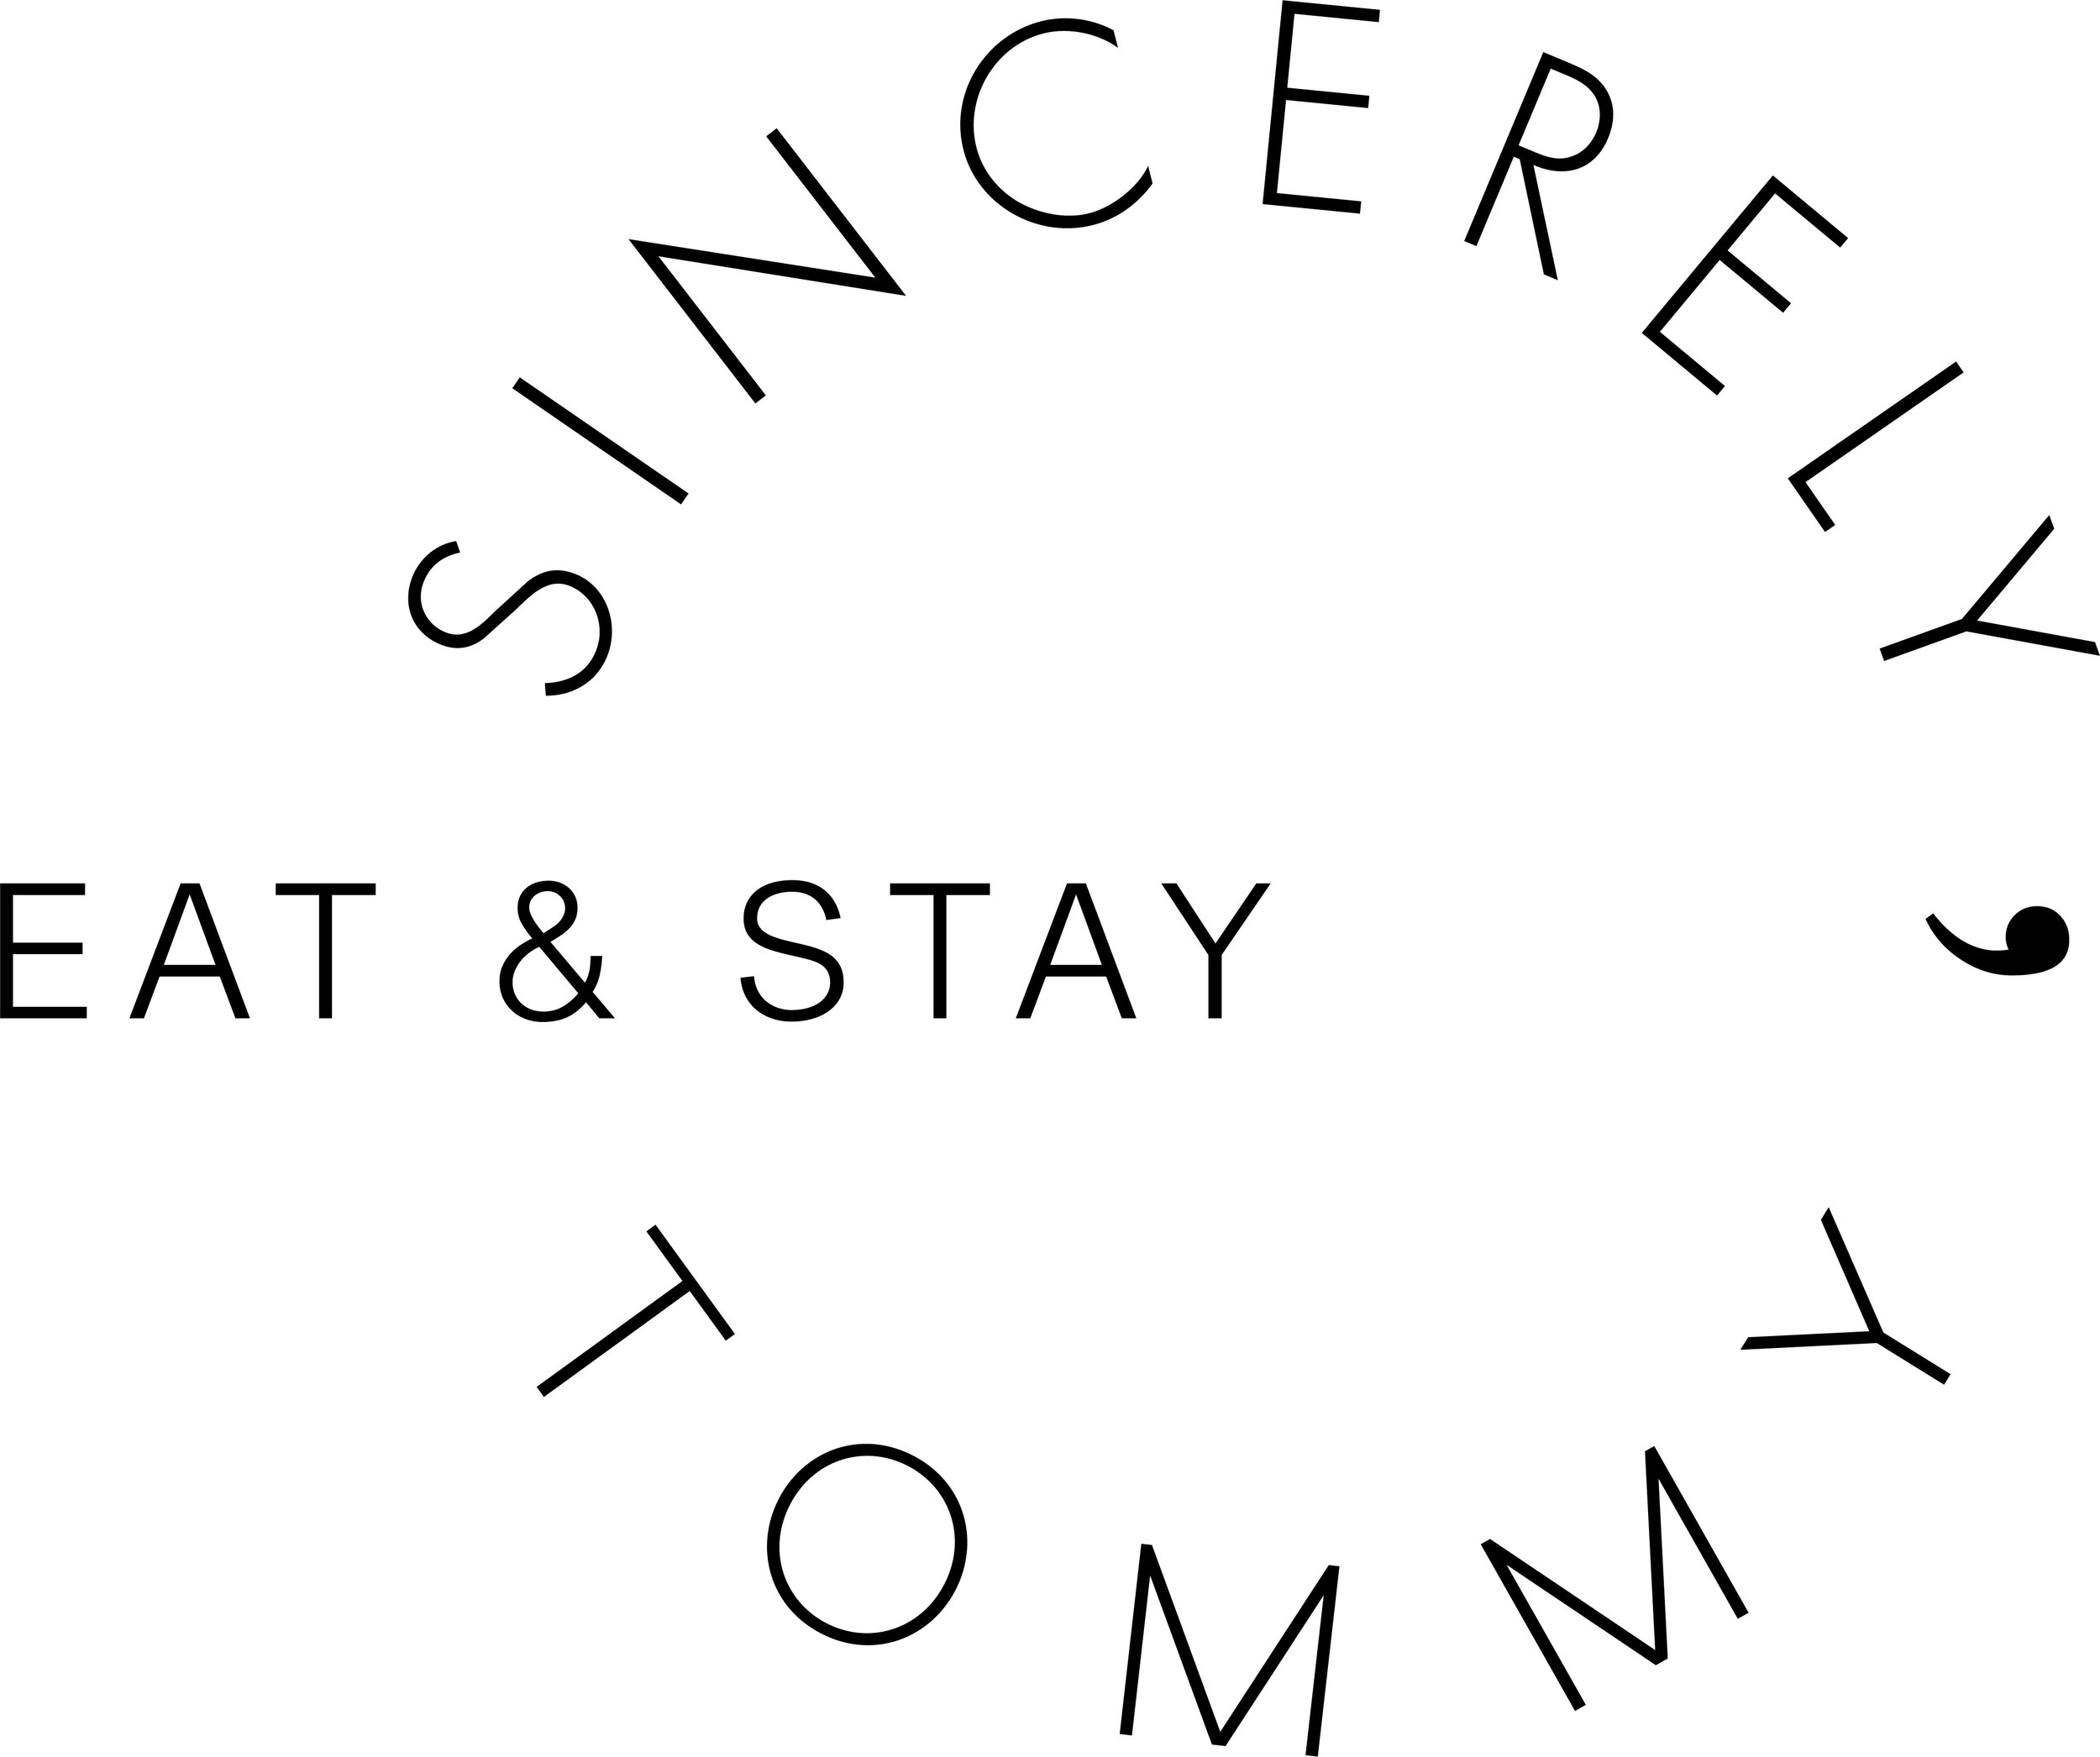 Executive Chef & Director of Operations of Che at Sincerely, Tommy Eat & Stay